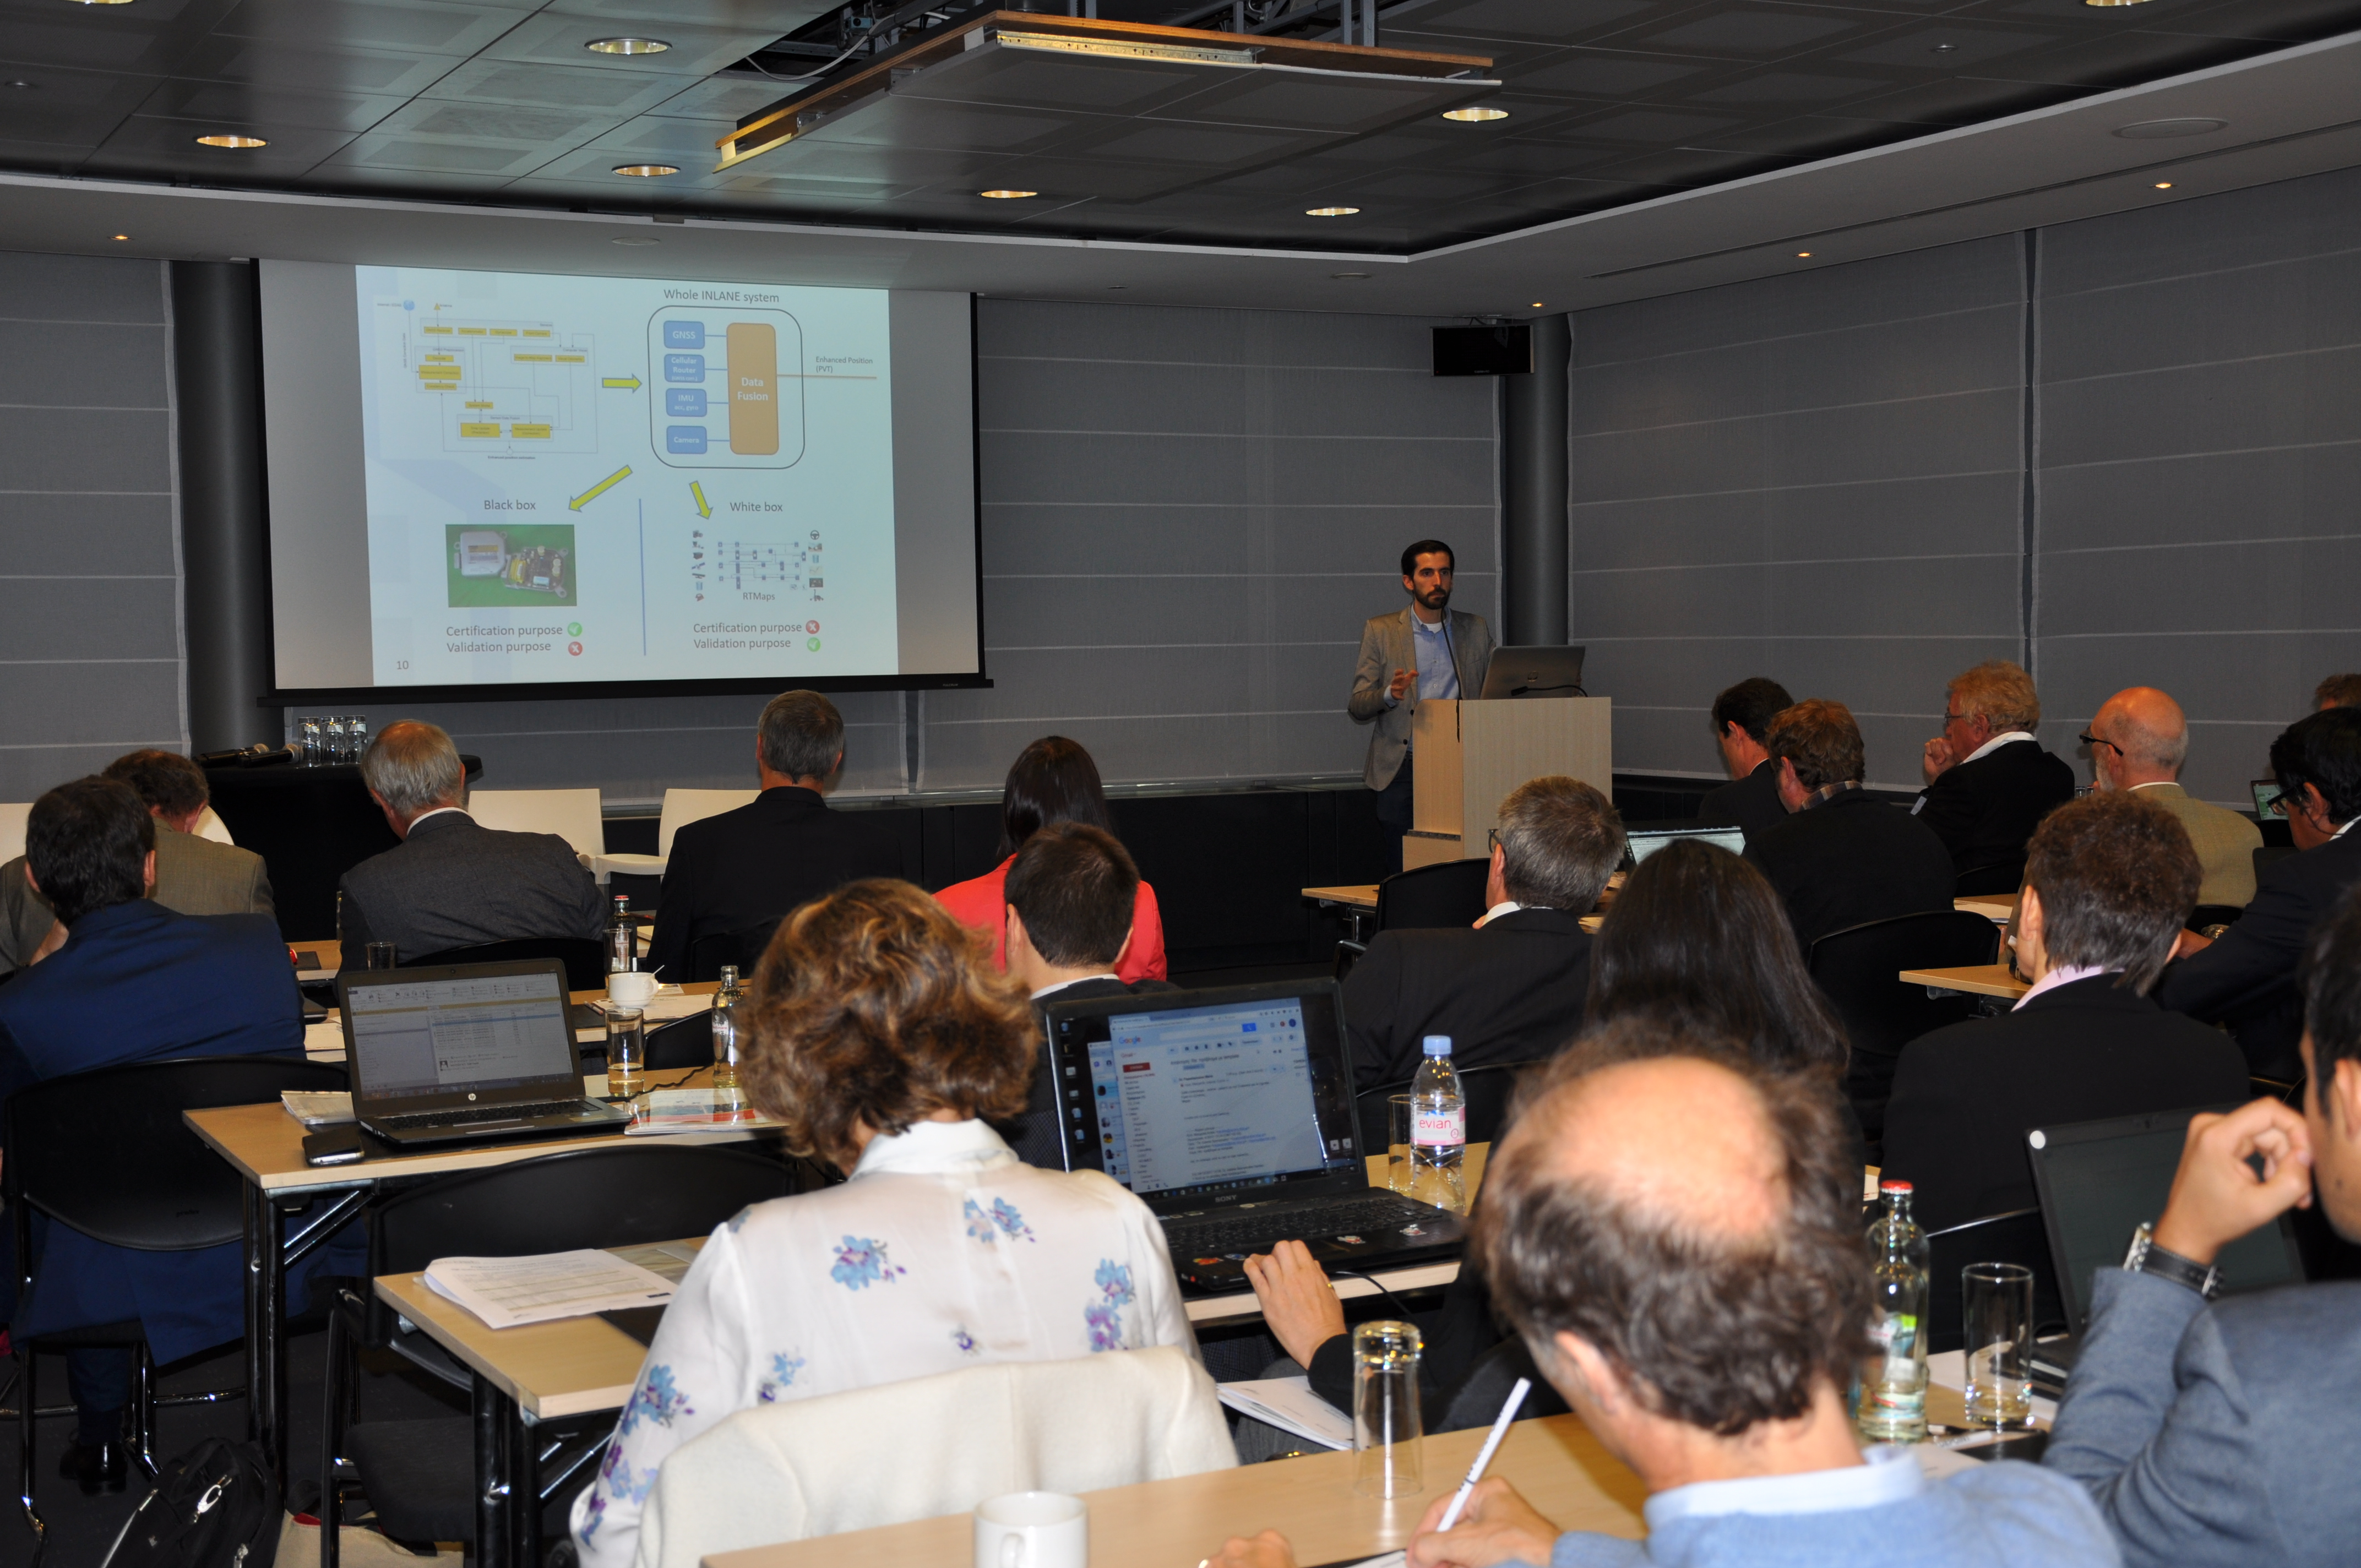 Vicomtech-IK4 presented inLane project at the